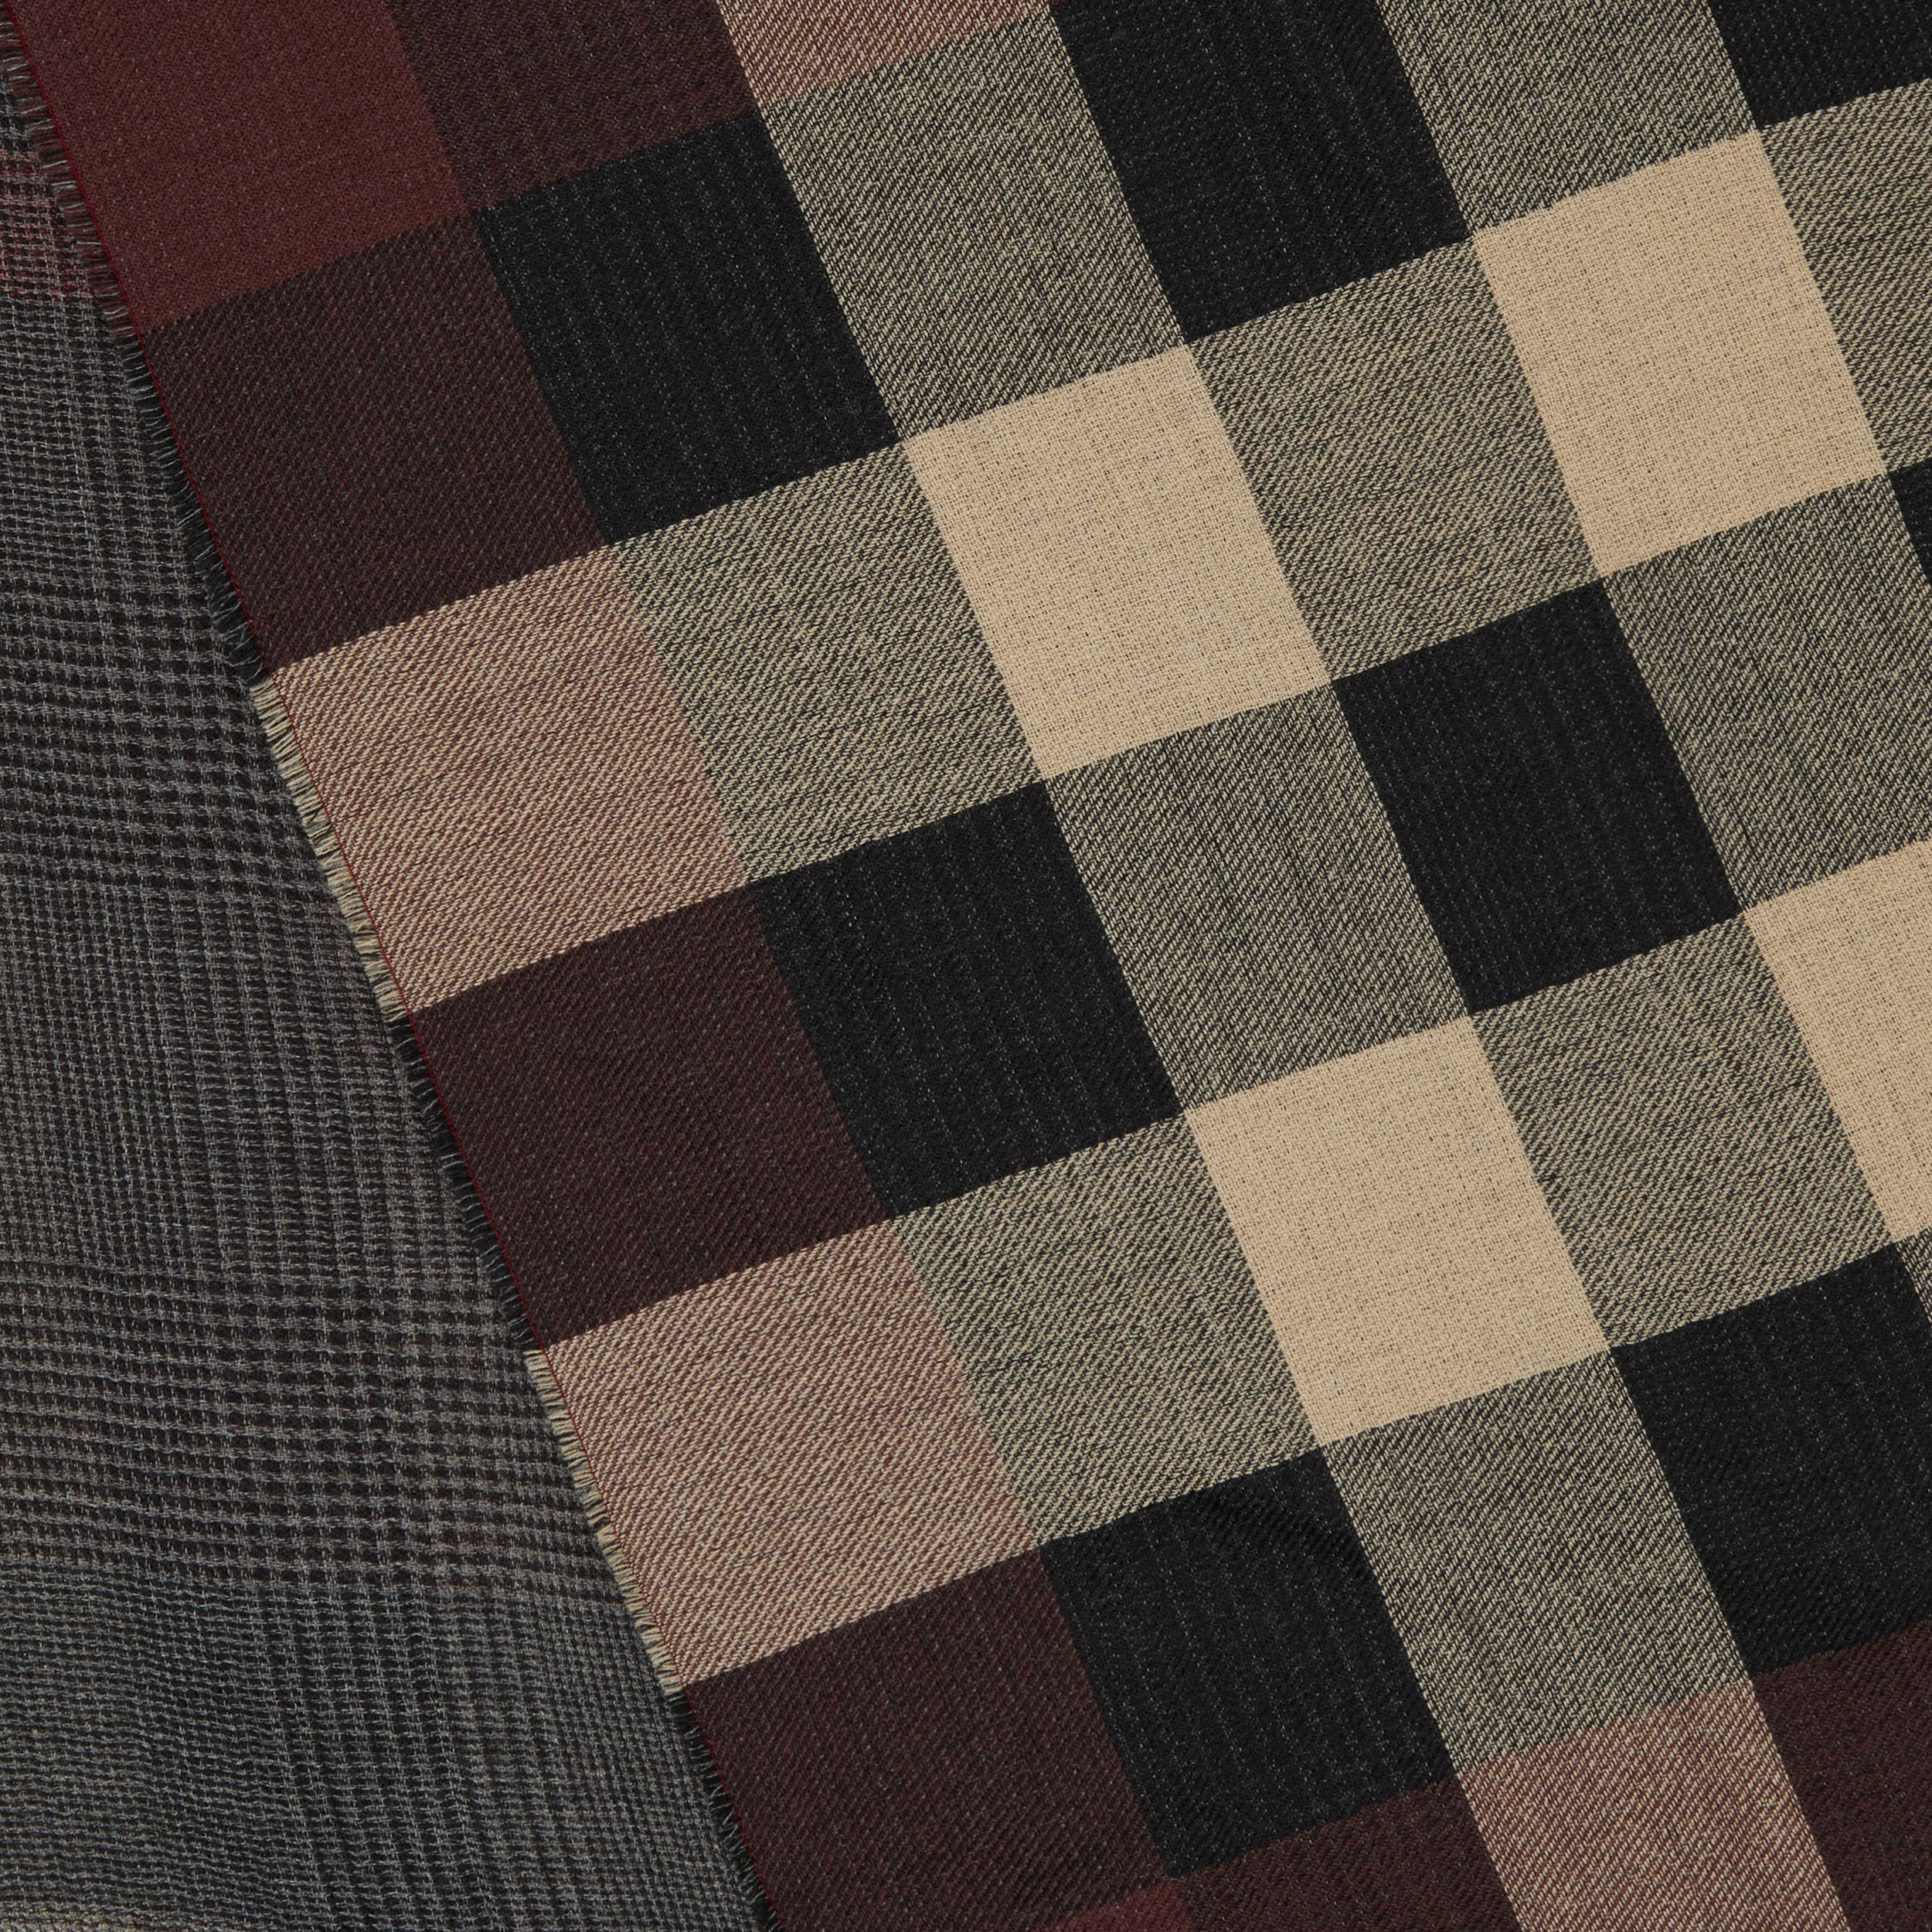 Reversible Check Cashmere Scarf in Burgundy | Burberry - 2